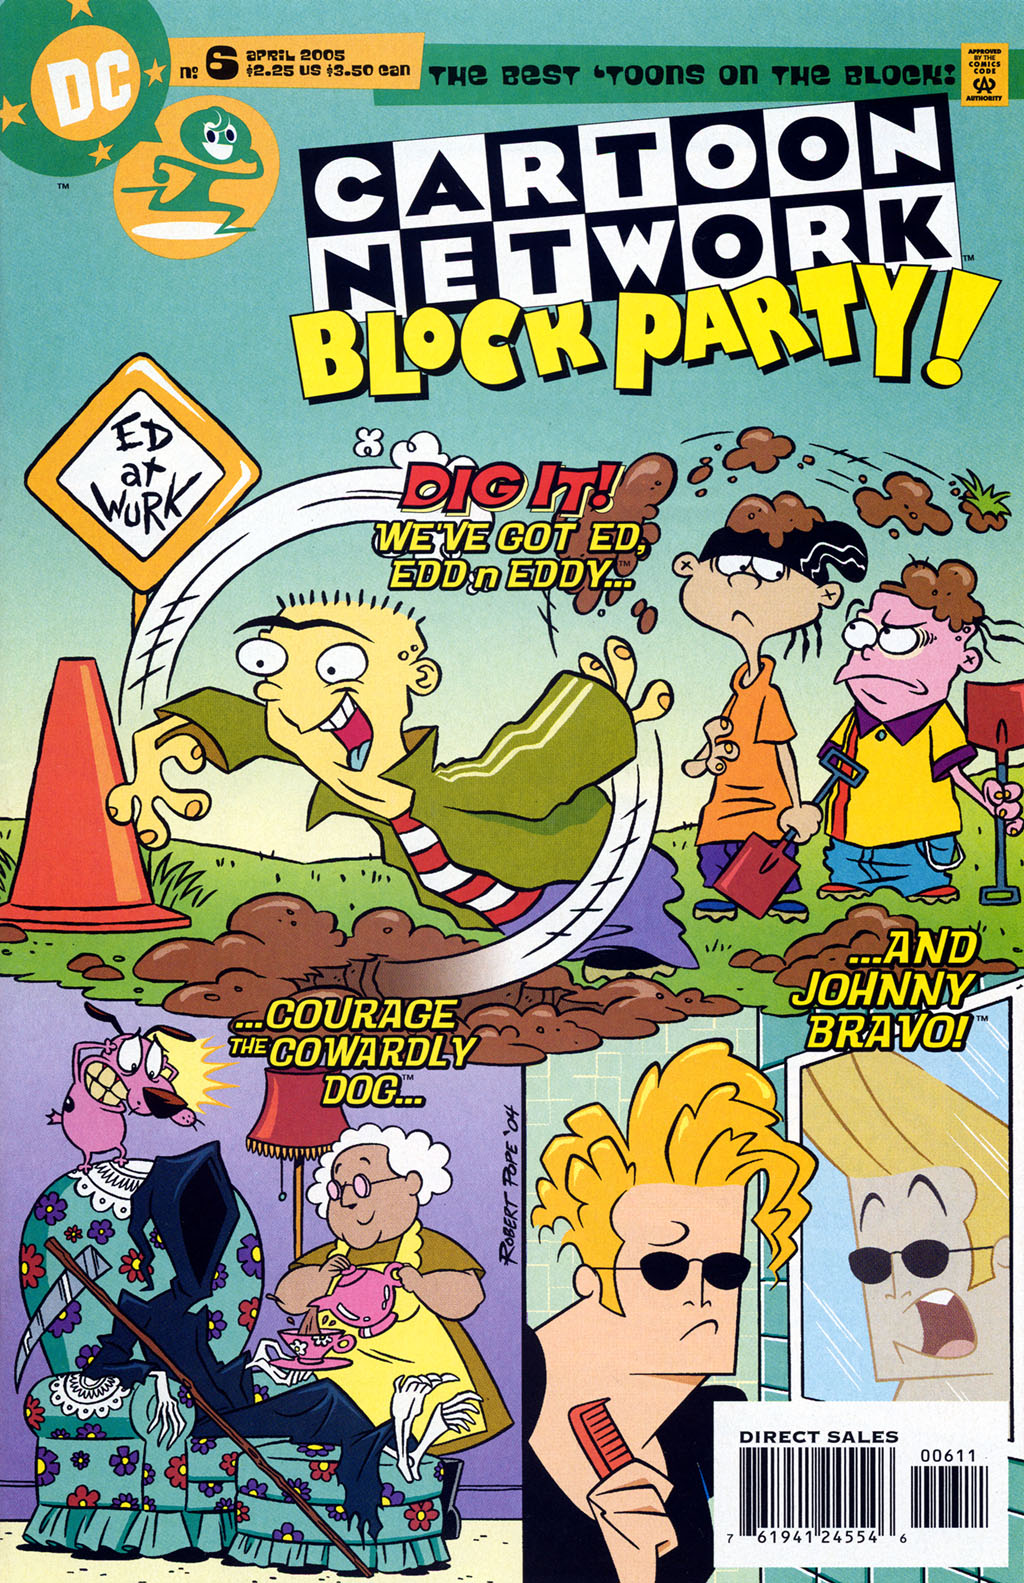 COURAGE COWARDLY DOG Comic # 33 Johnny Bravo SOLD OUT